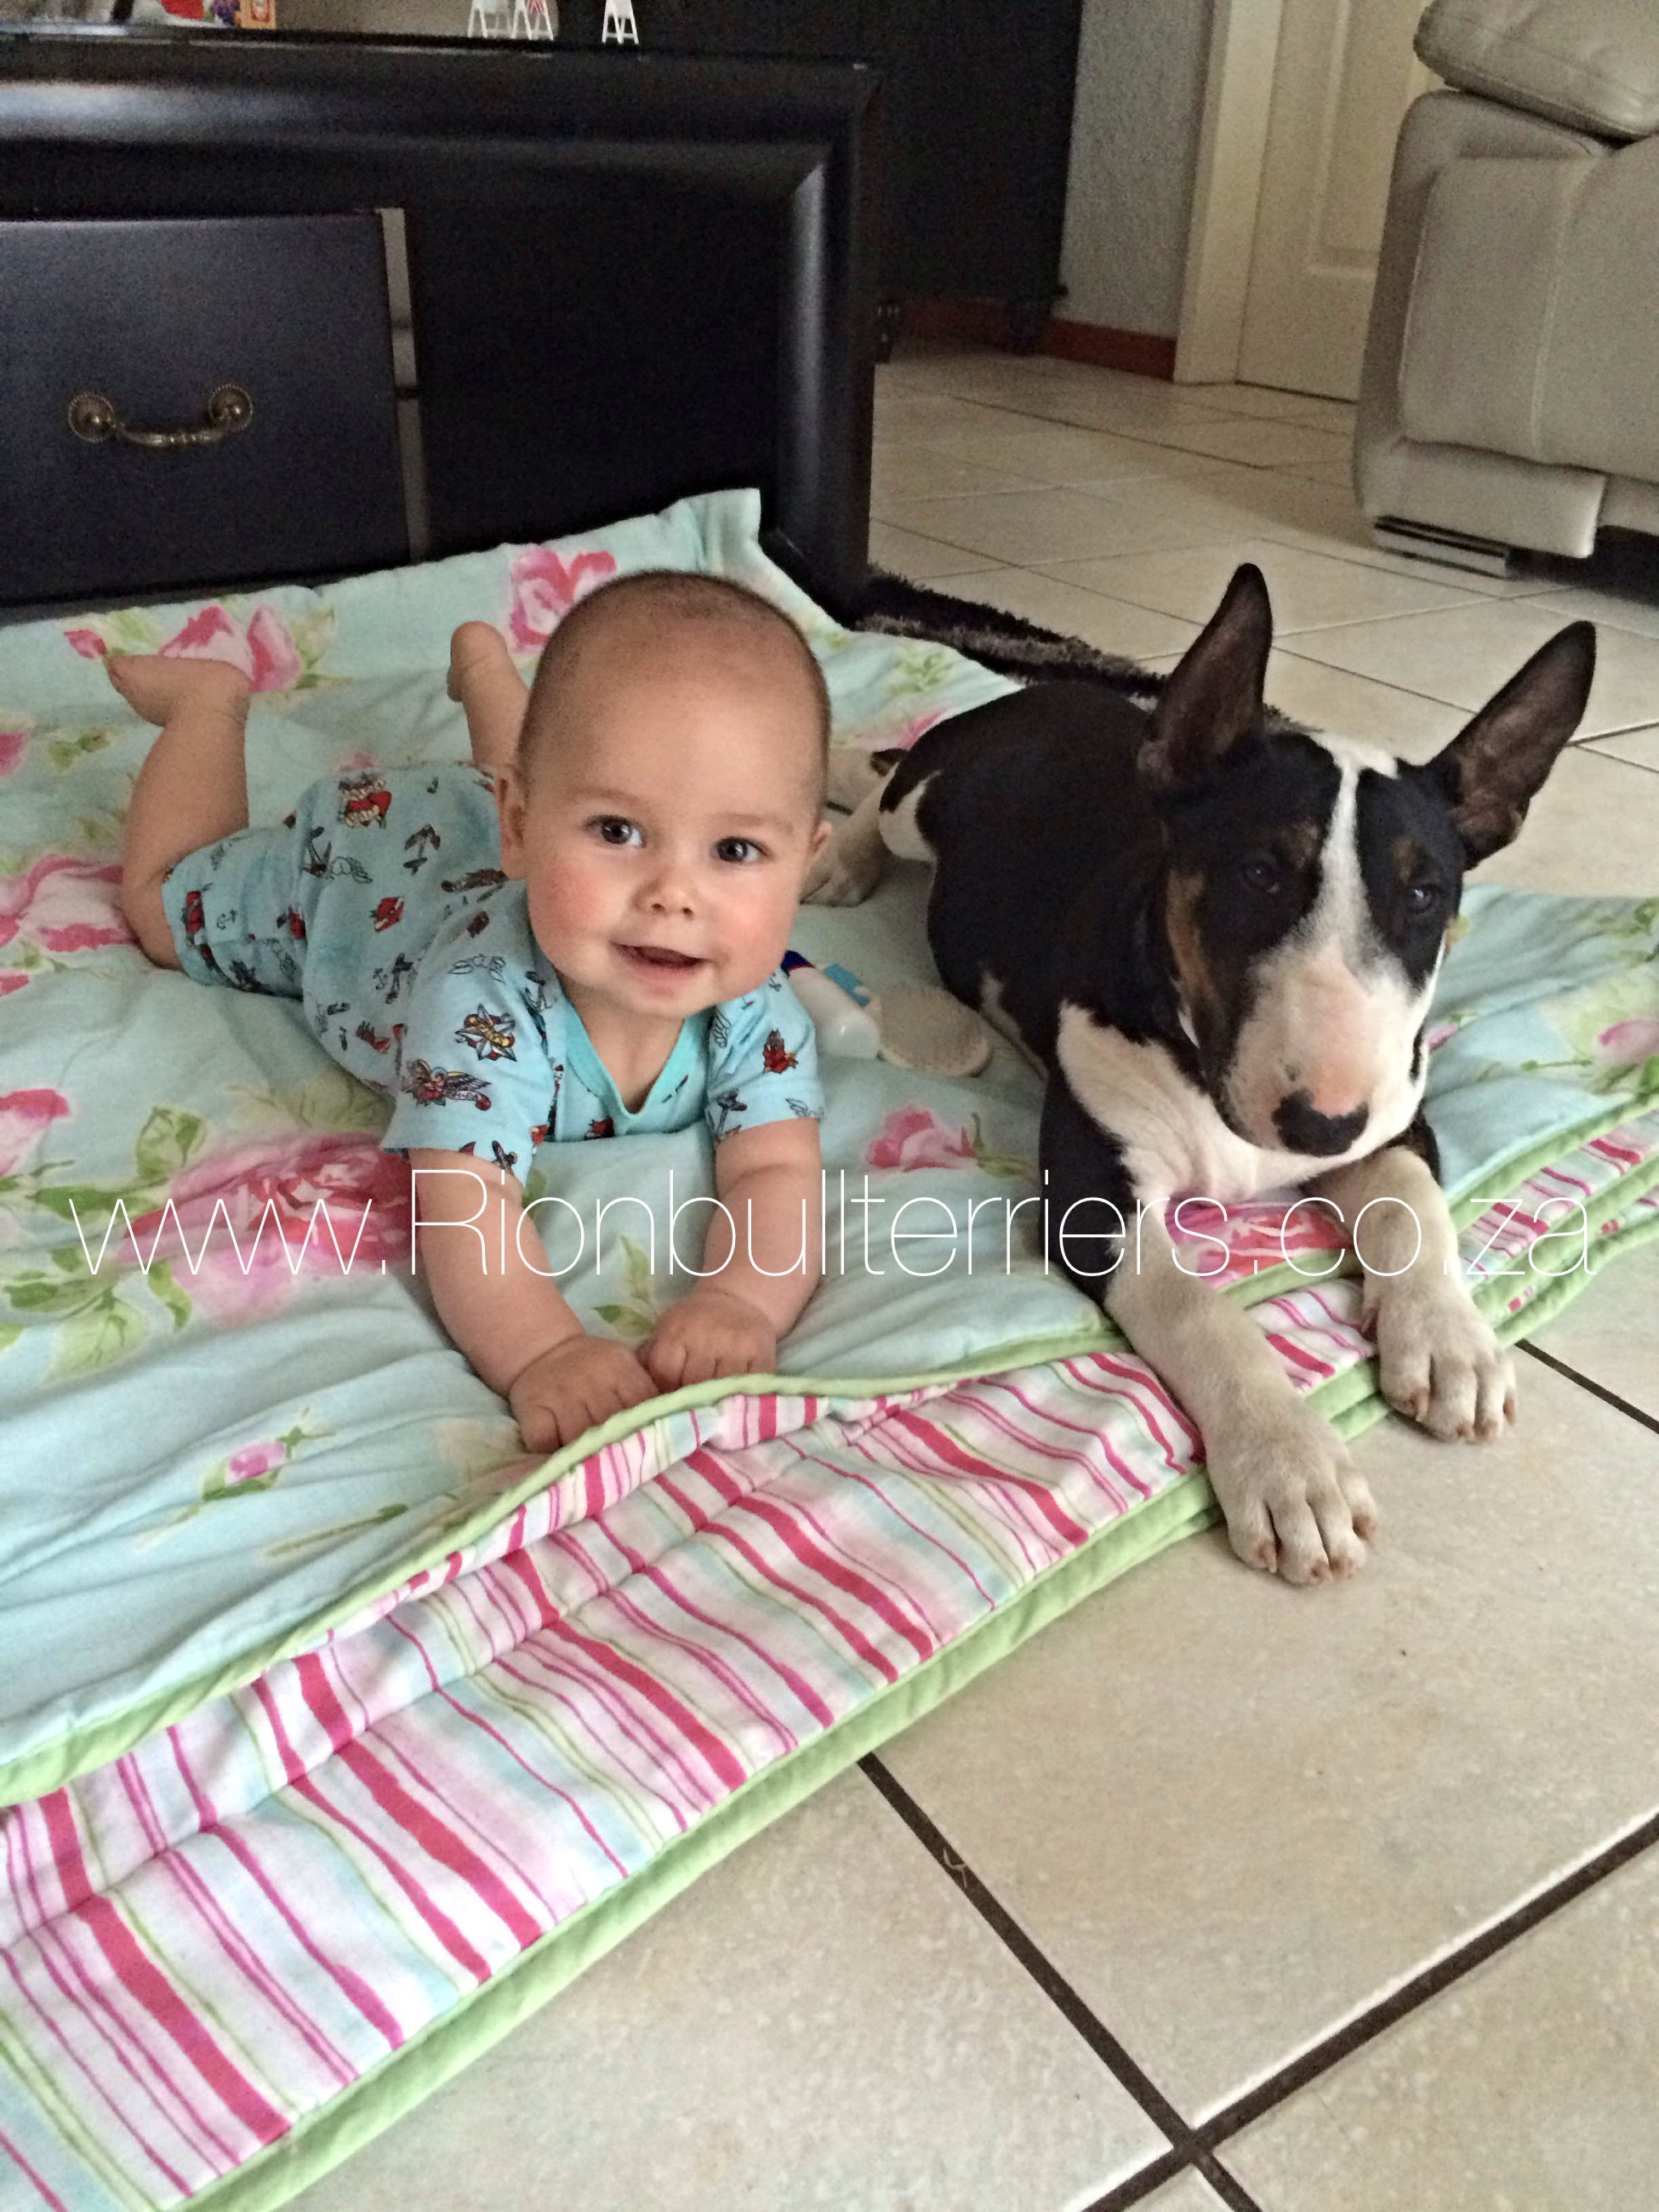 Bullterrier Puppy and baby - Rion Bullterriers South Africa